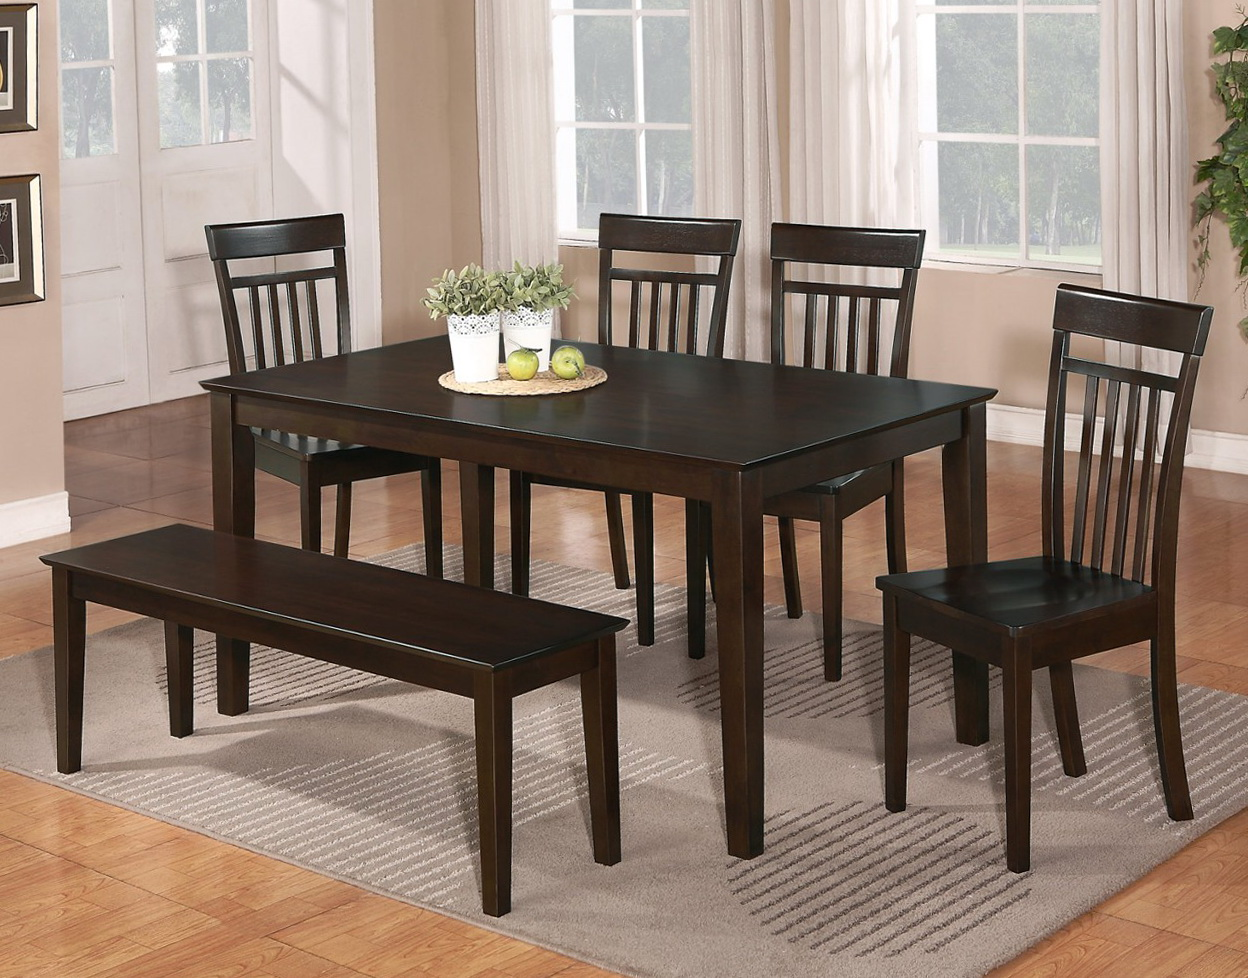 Kitchen Table With Bench Seating And Chairs